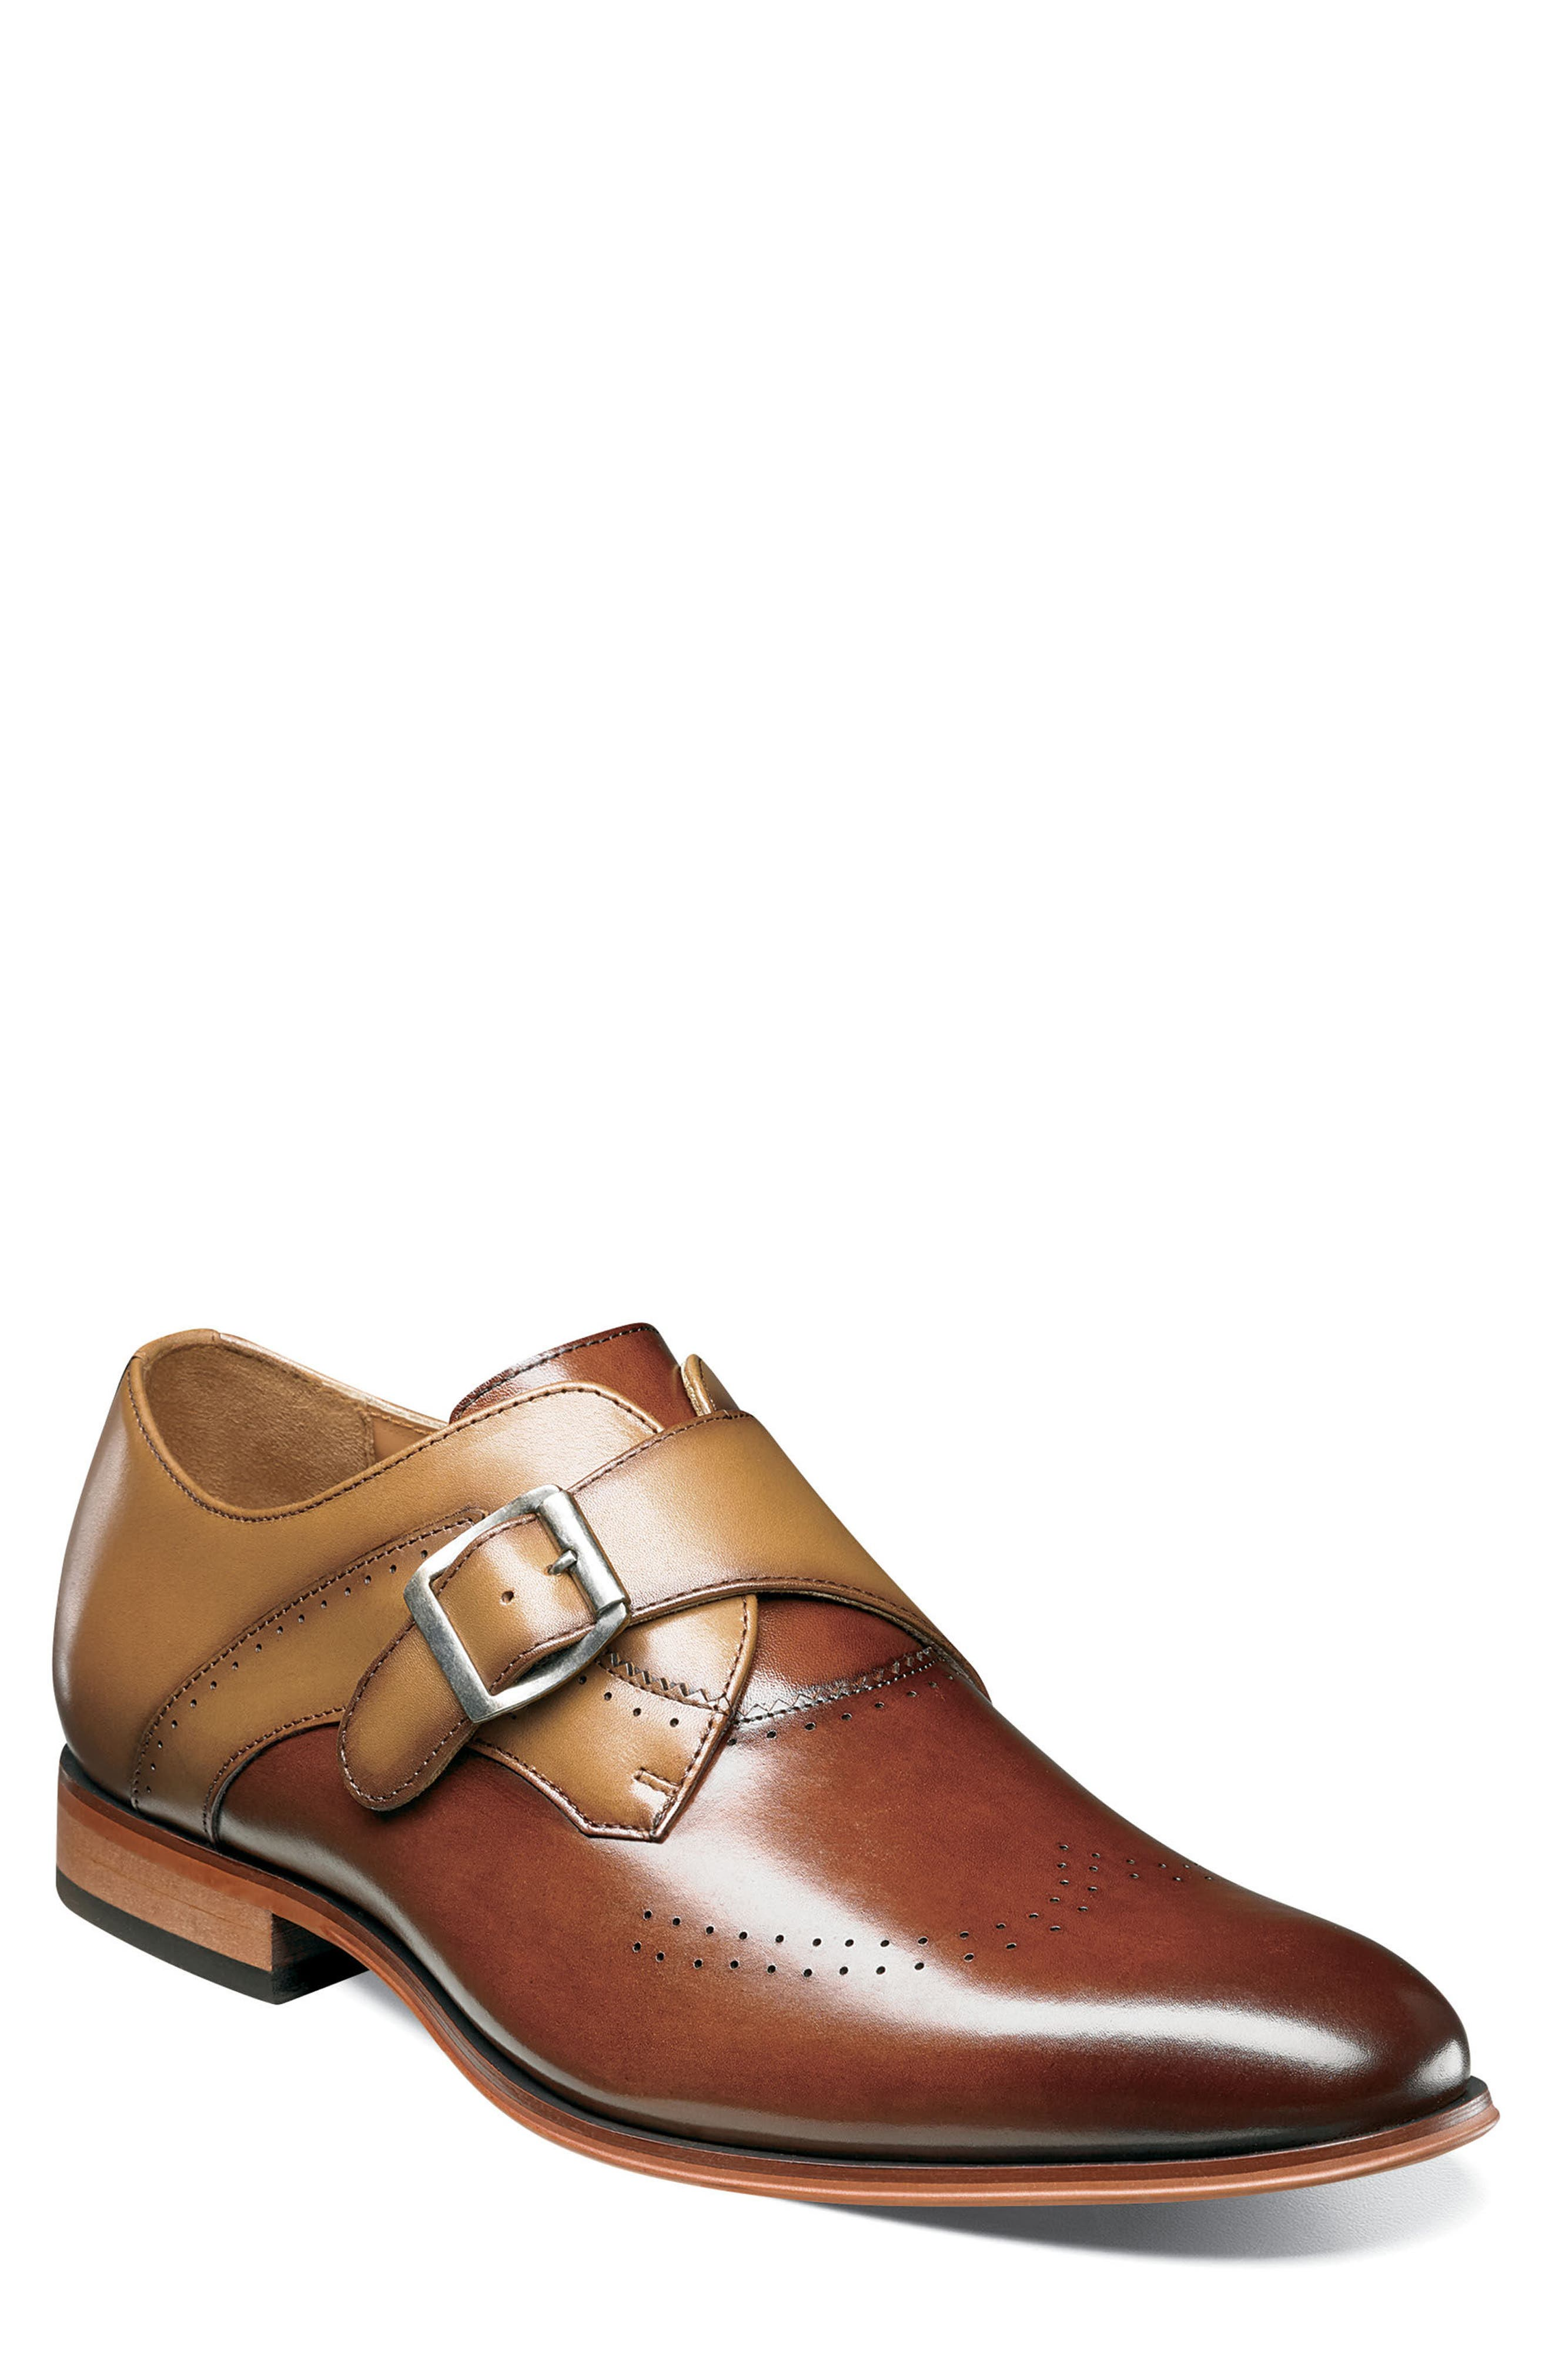 STACY ADAMS Saxton Perforated Monk Strap Shoe, Main, color, 201